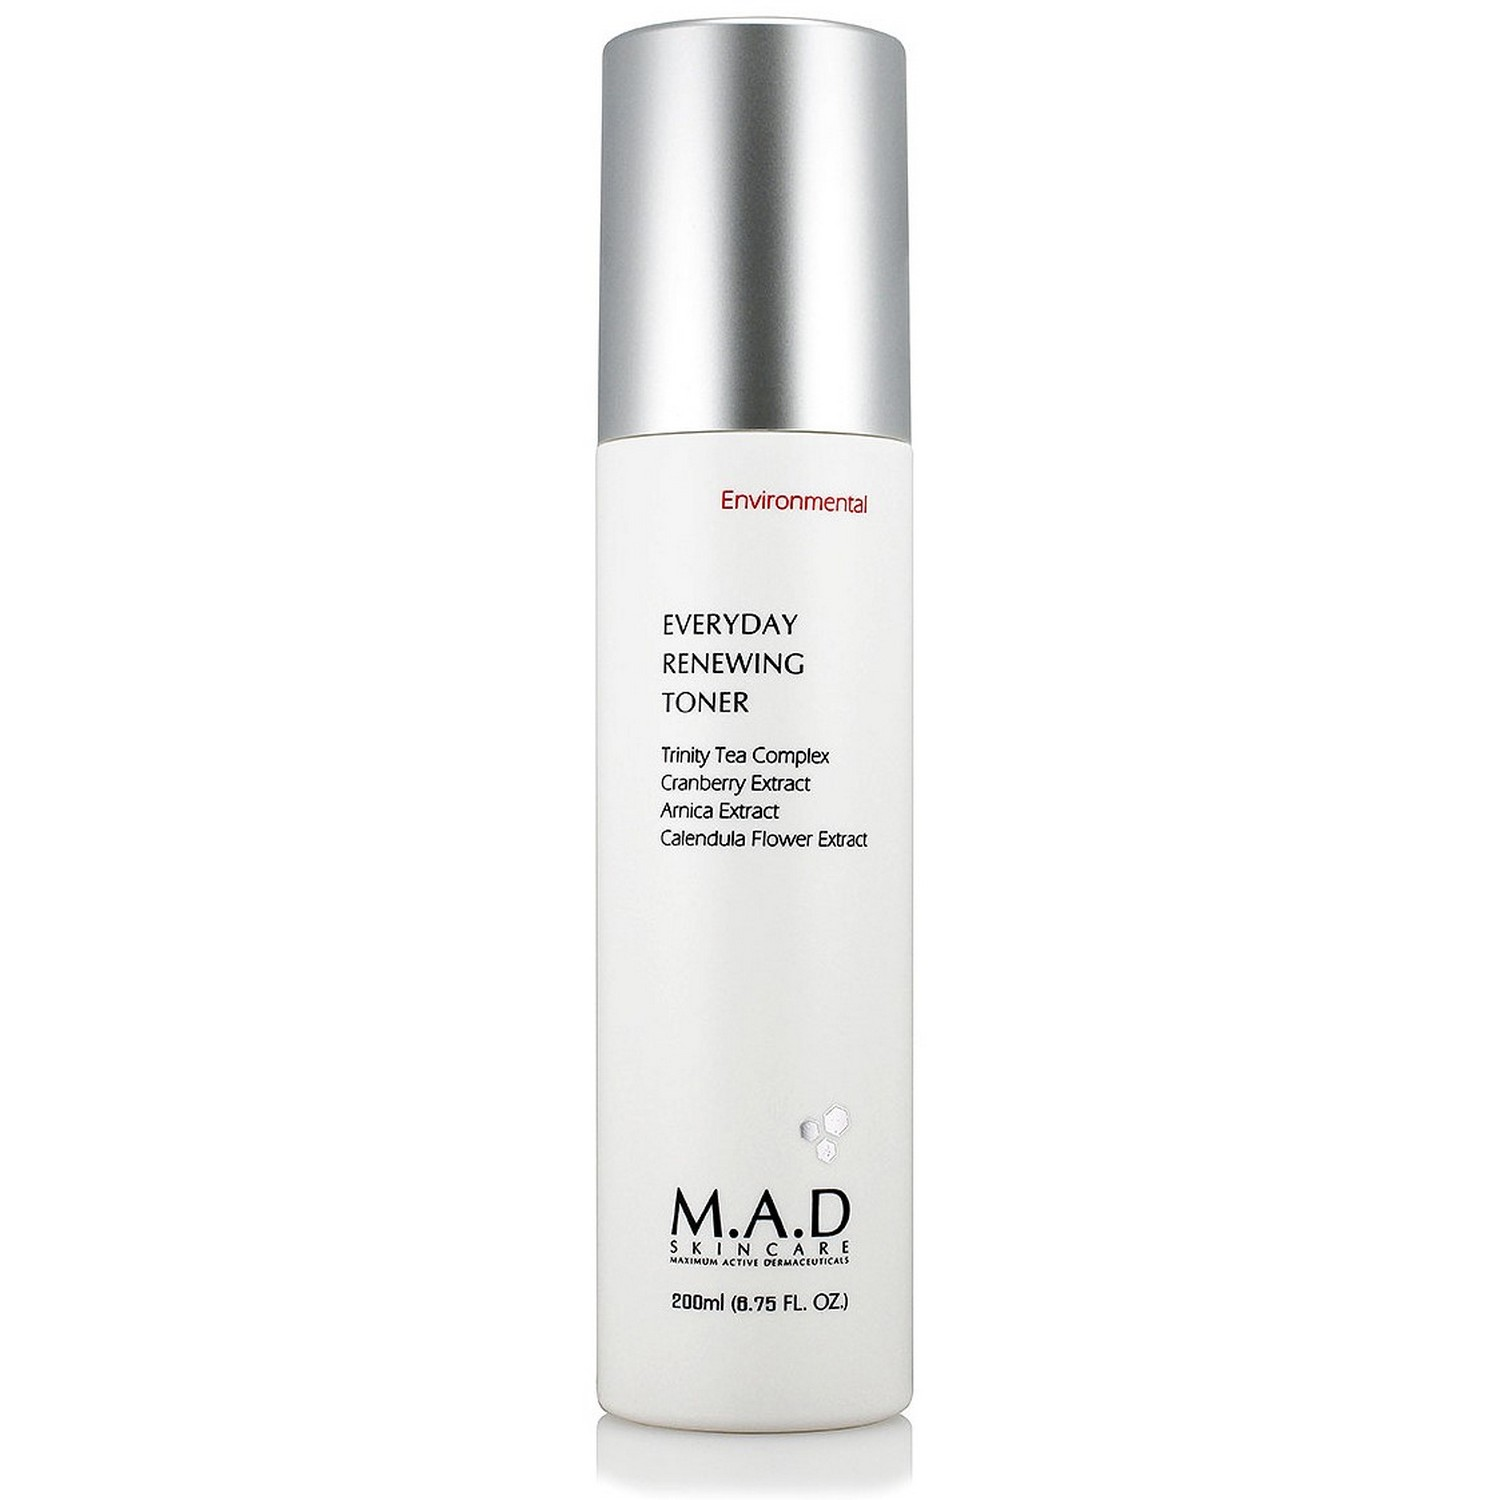 M.A.D SKINCARE EVERYDAY RENEWING TONER (200 ml / 6.75 fl oz)